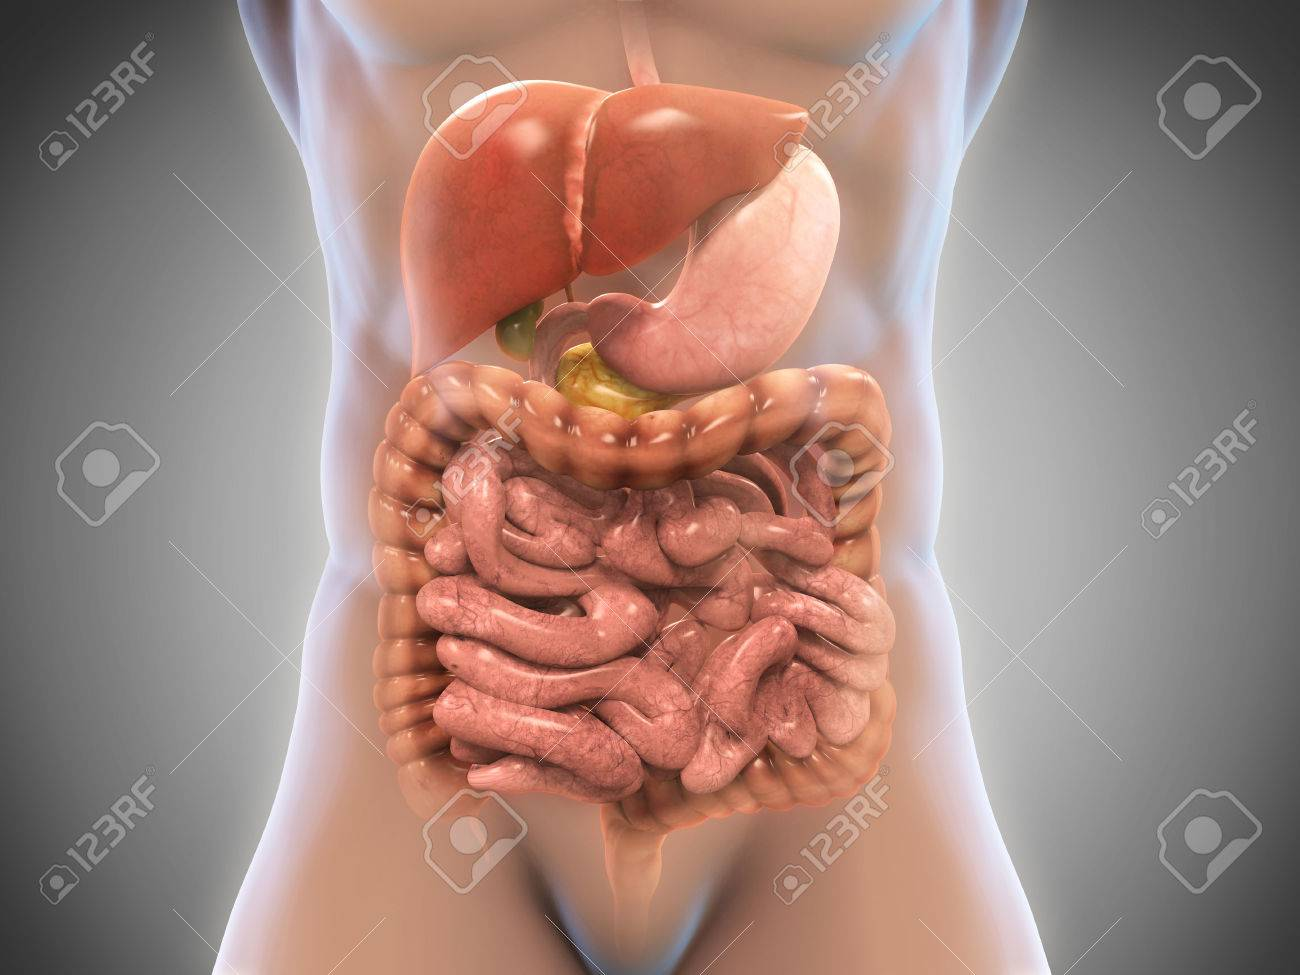 Human digestive system stock photo picture and royalty free image human digestive system ccuart Images